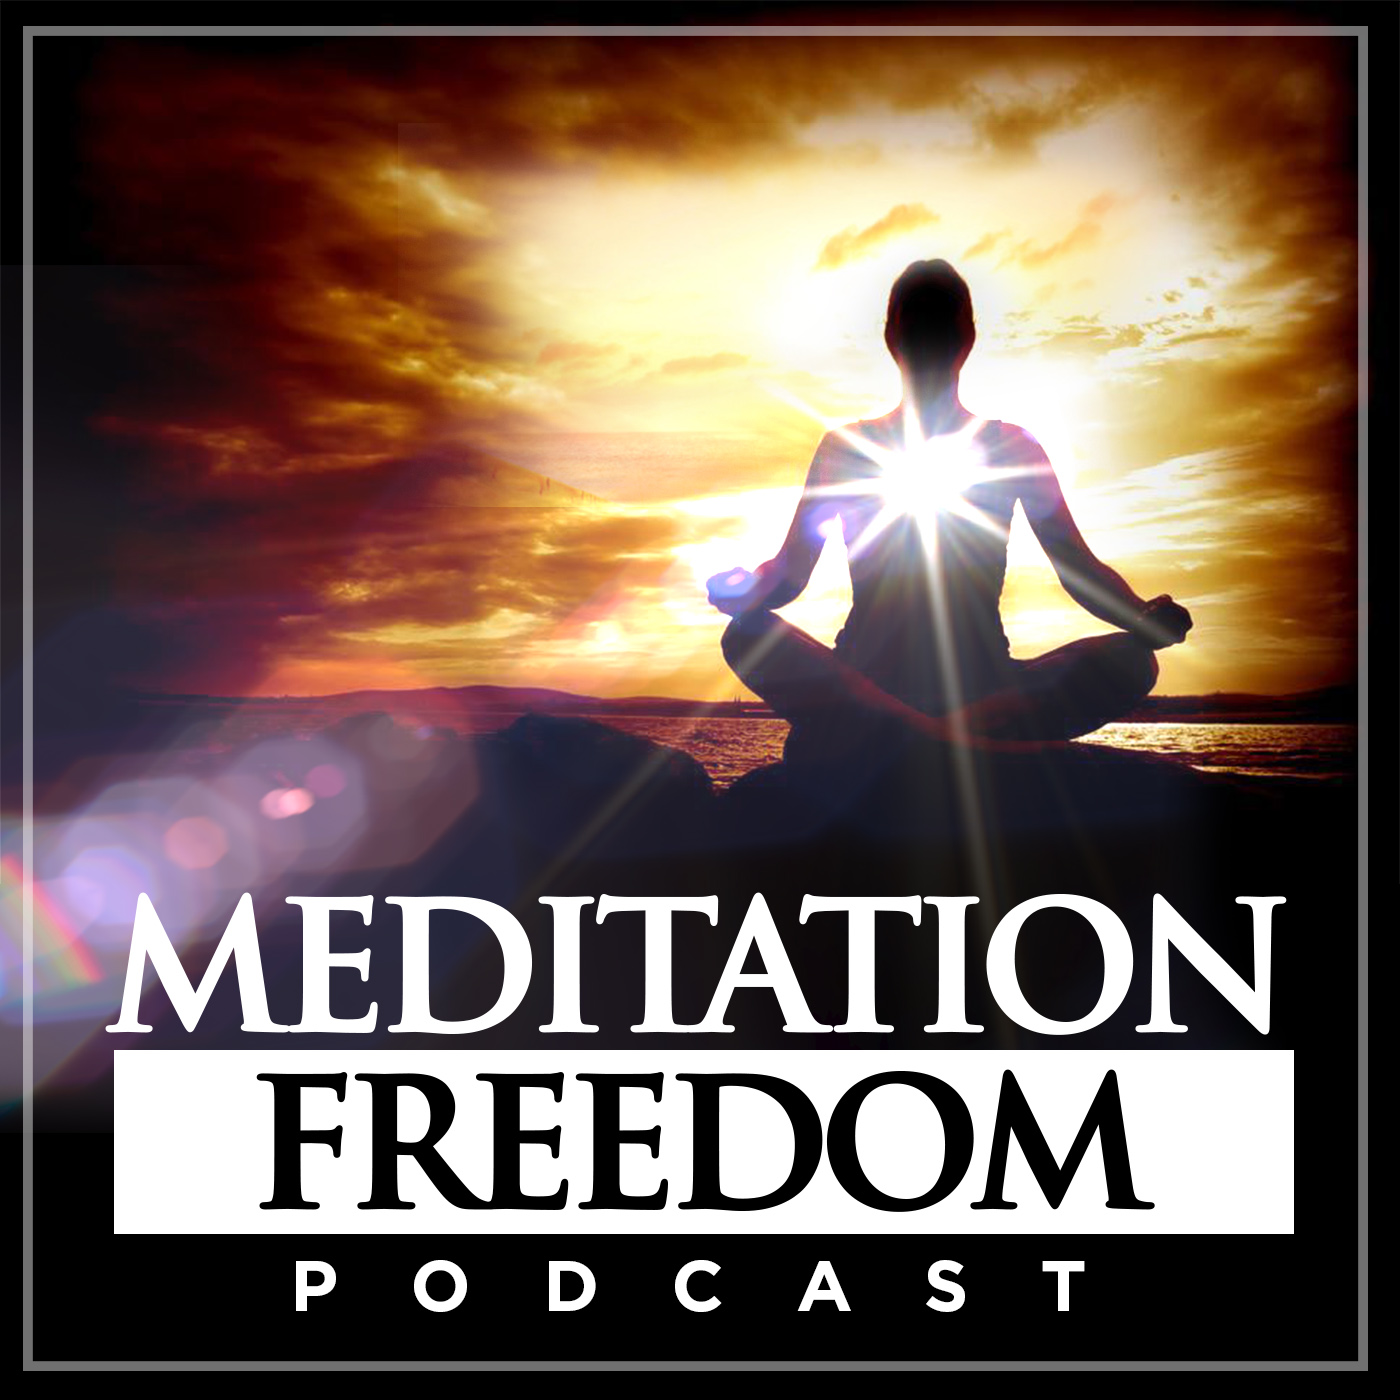 The Meditation Freedom Podcast